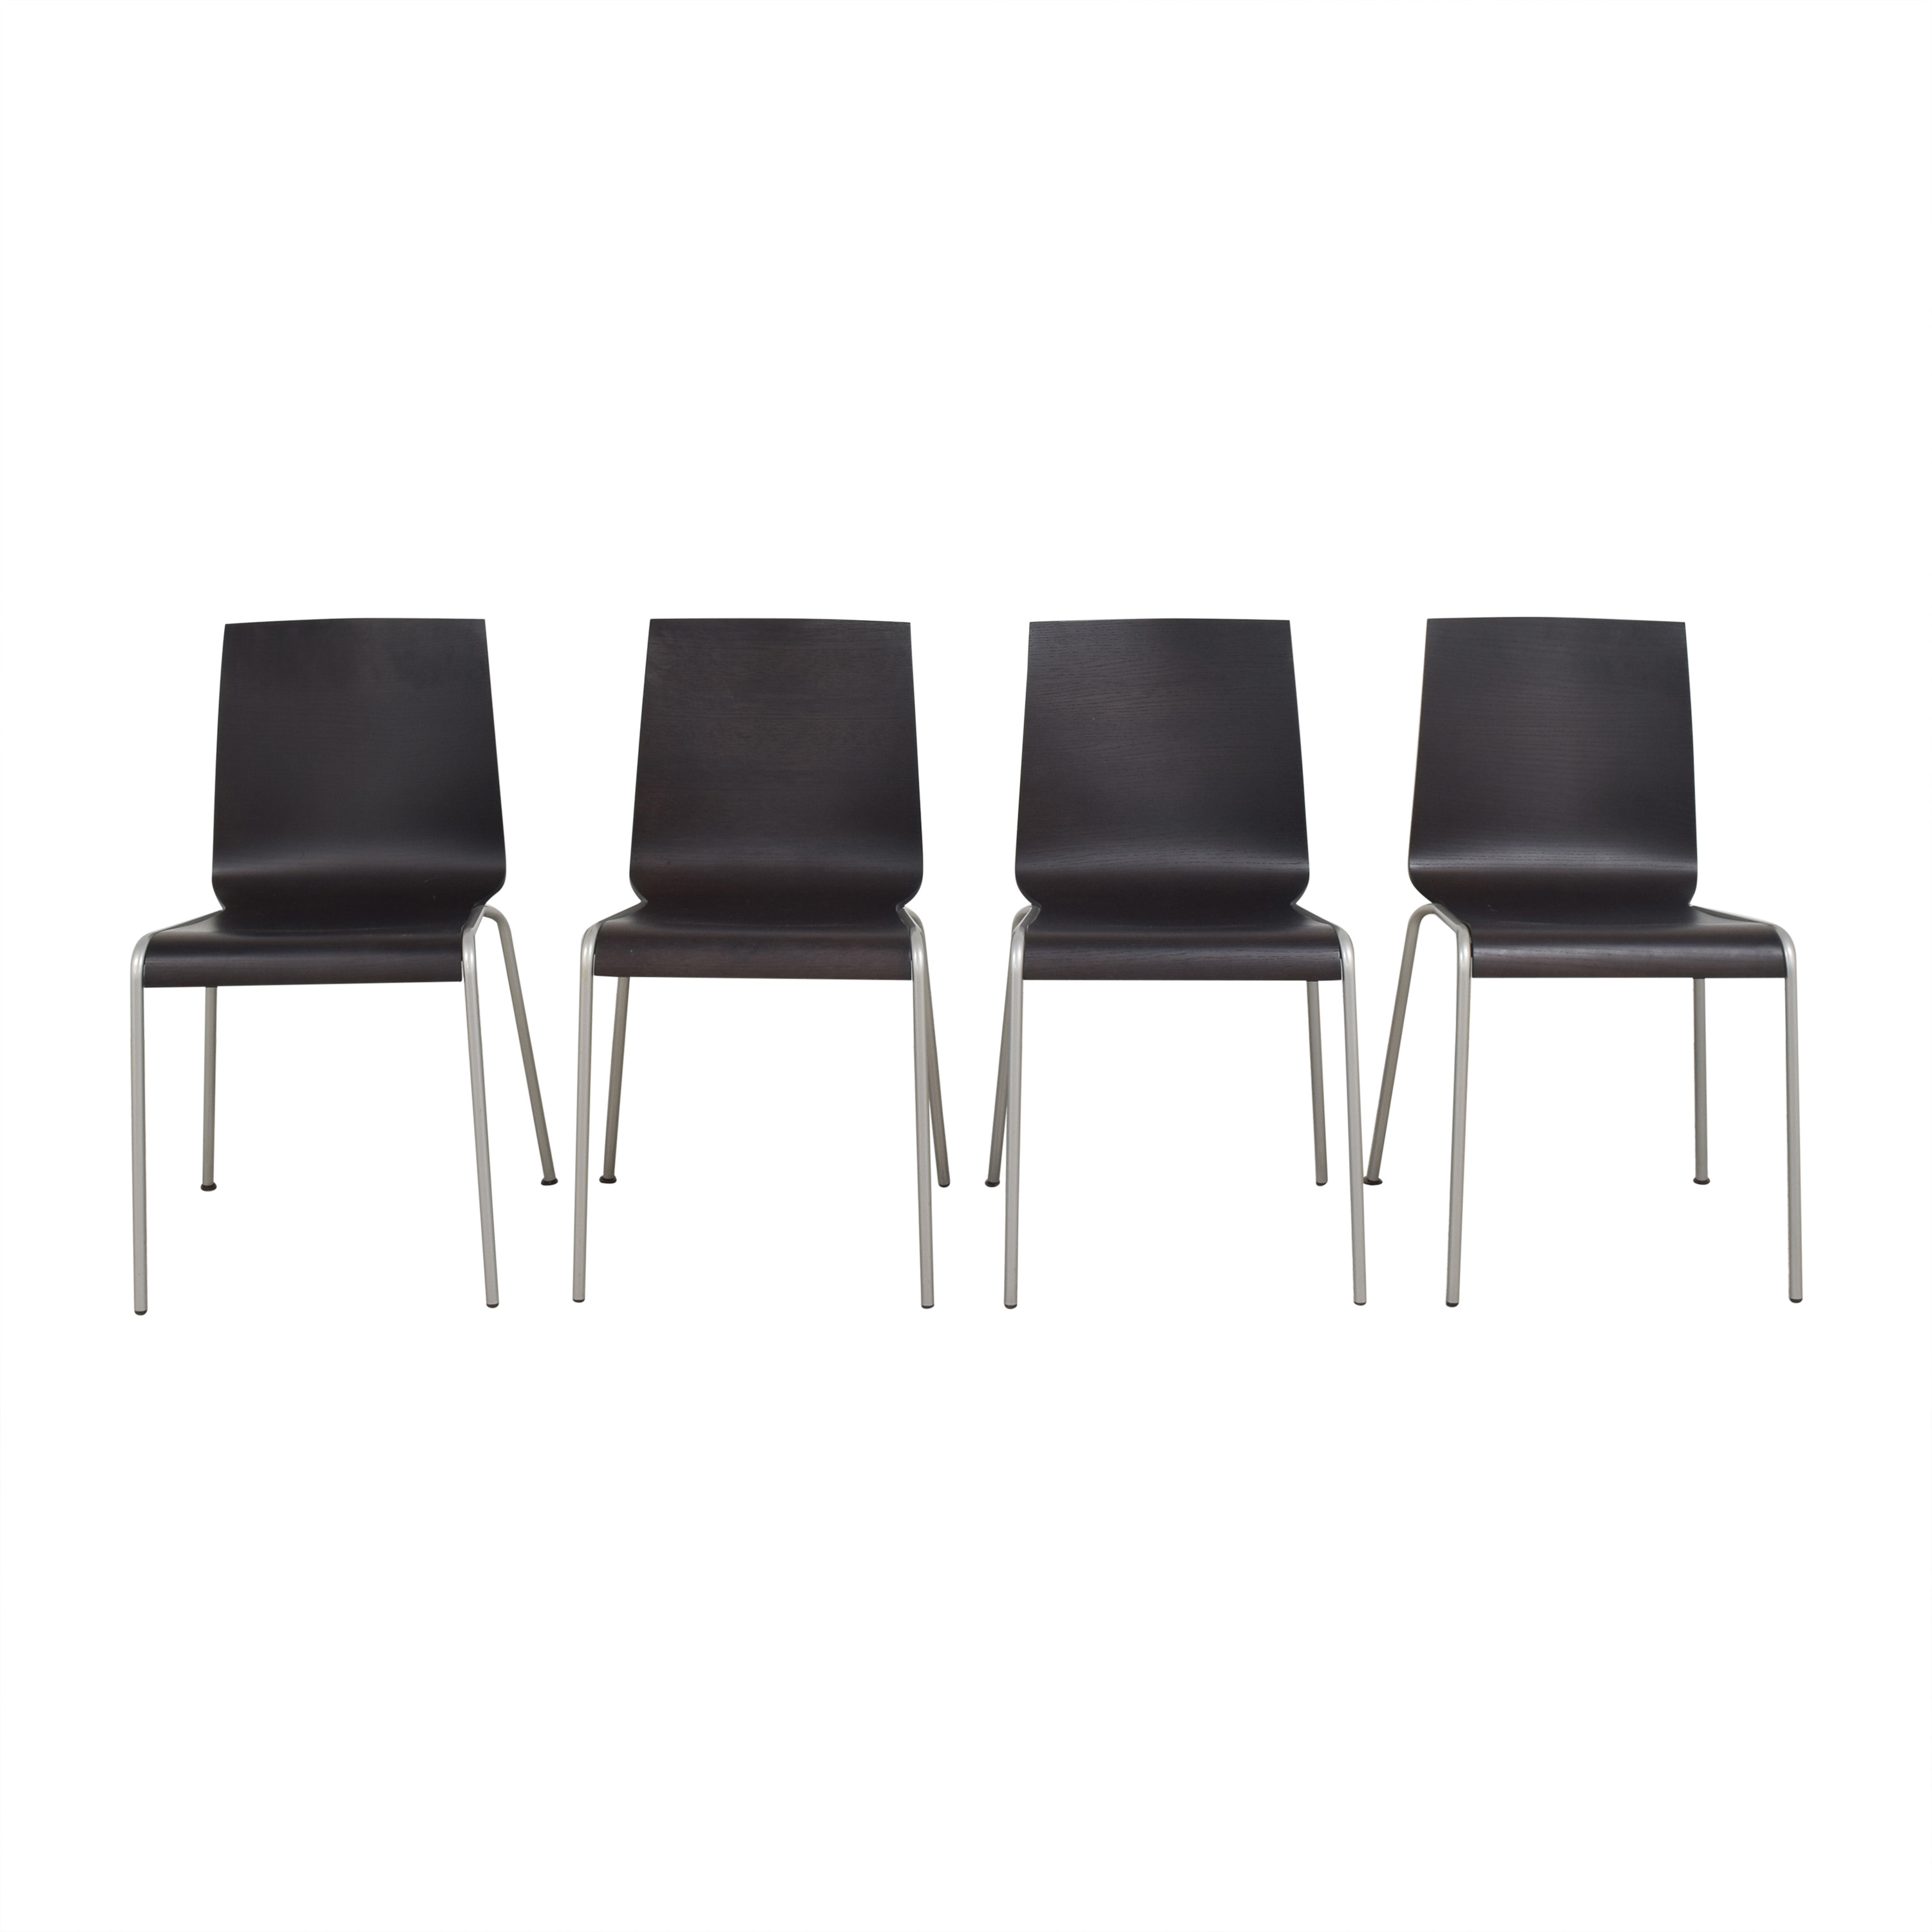 Calligaris Calligaris Dining Chairs dimensions